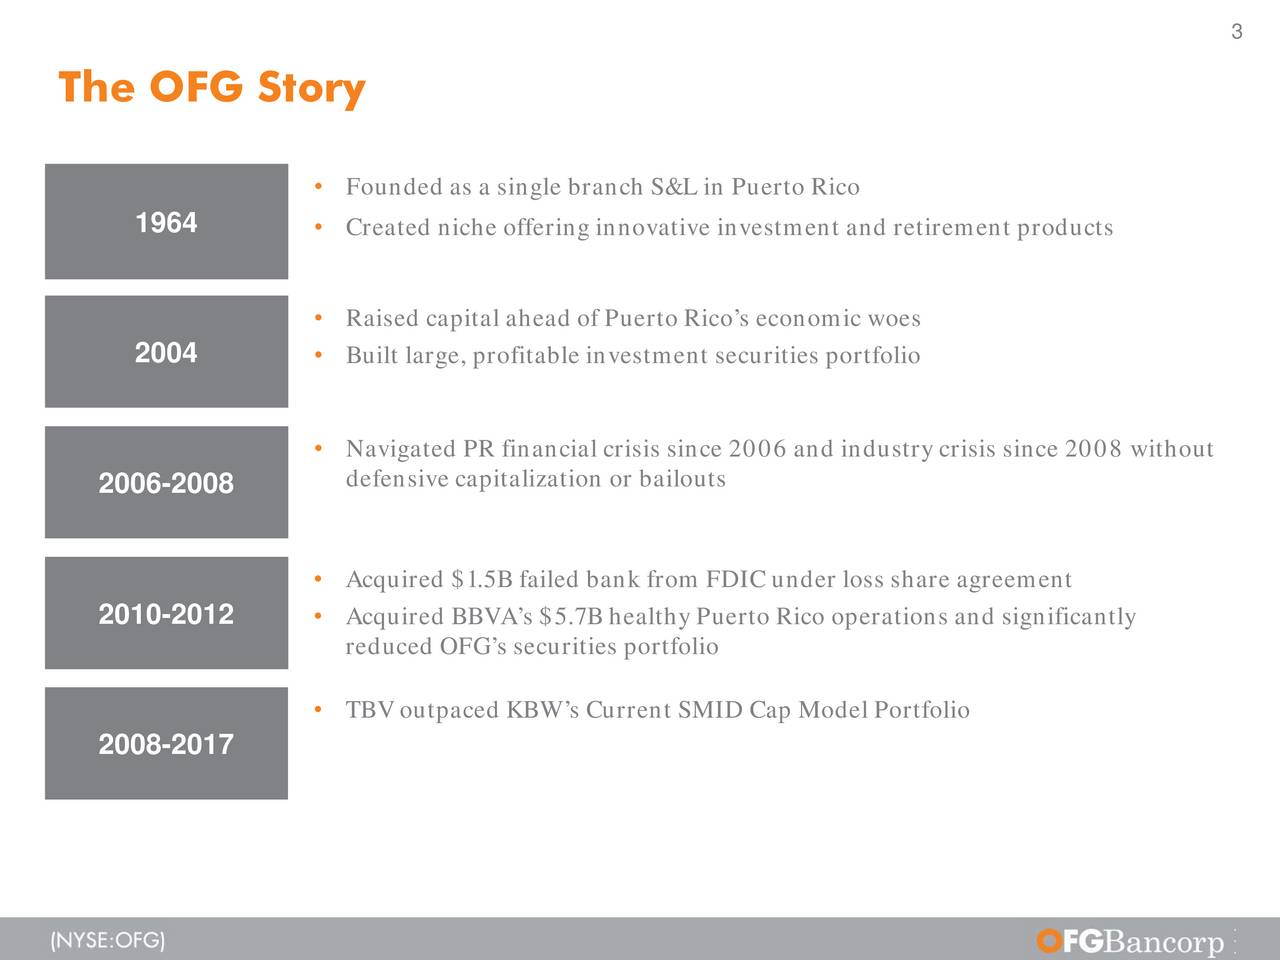 The OFG Story Founded as a single branch S&L in Puerto Rico 1964  Created niche offering innovative investment and retirement products Raised capital ahead of Puerto Ricos economic woes 2004  Built large, profitable investment securities portfolio Navigated PR financial crisis since 2006 and industry crisis since 2008 without 2006-2008 defensive capitalization or bailouts Acquired $1.5B failed bank from FDIC under loss share agreement 2010-2012  Acquired BBVAs $5.7B healthy Puerto Rico operations and significantly reduced OFGs securities portfolio TBV outpacedKBWs Current SMID Cap Model Portfolio 2008-2017